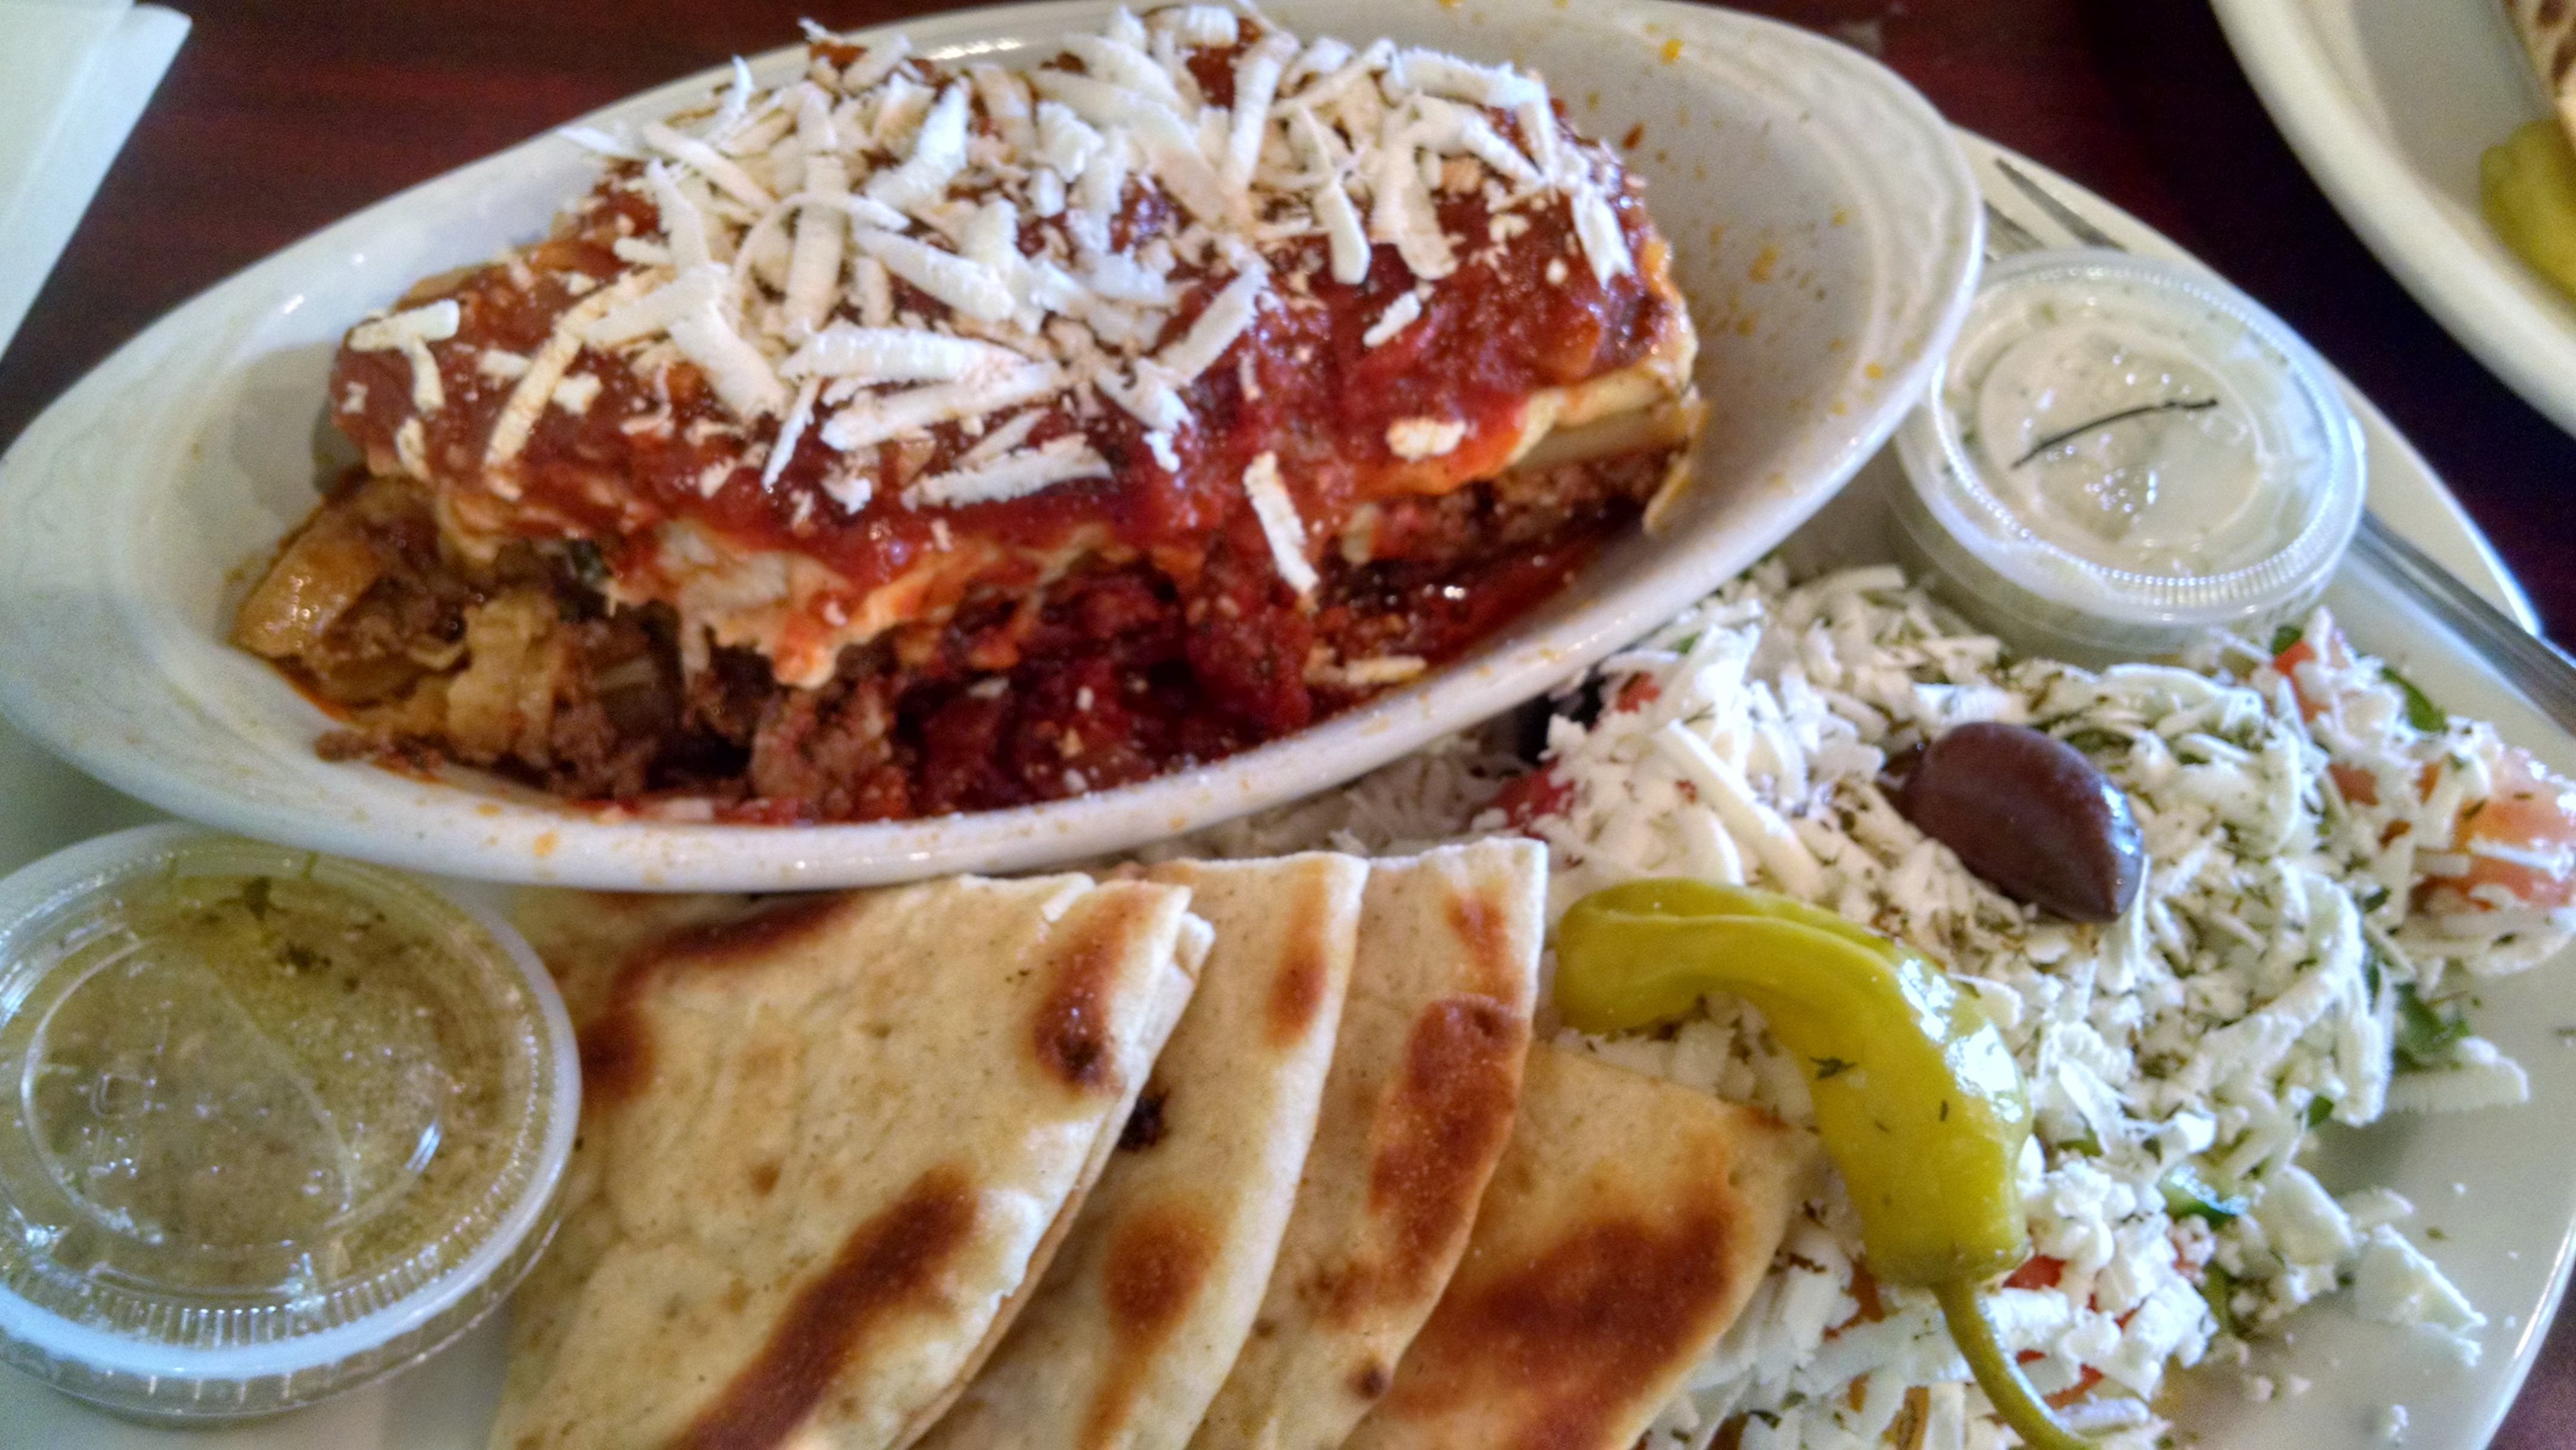 Restaurant news mlts time out offers greek and american classics restaurant news mlts time out offers greek and american classics black ball opens in nearby edmonds ccuart Choice Image